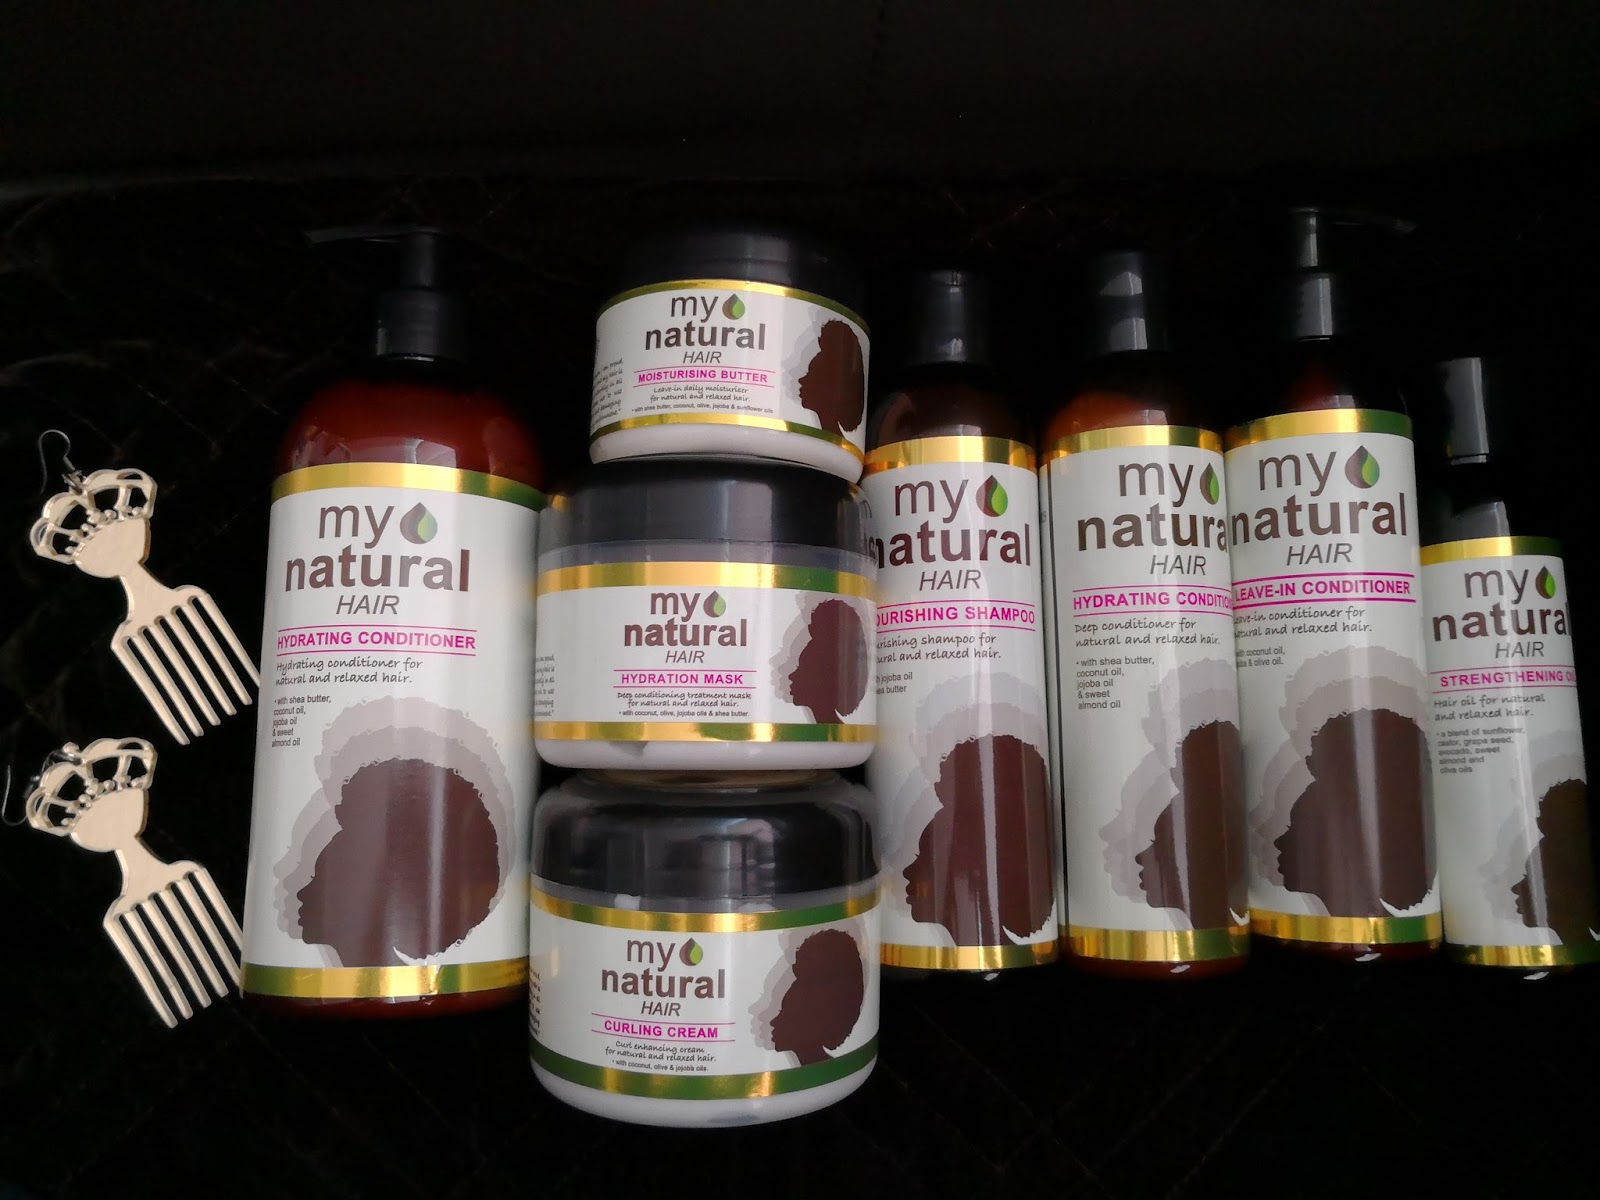 hair natural care africa south review range african brand speak let za local